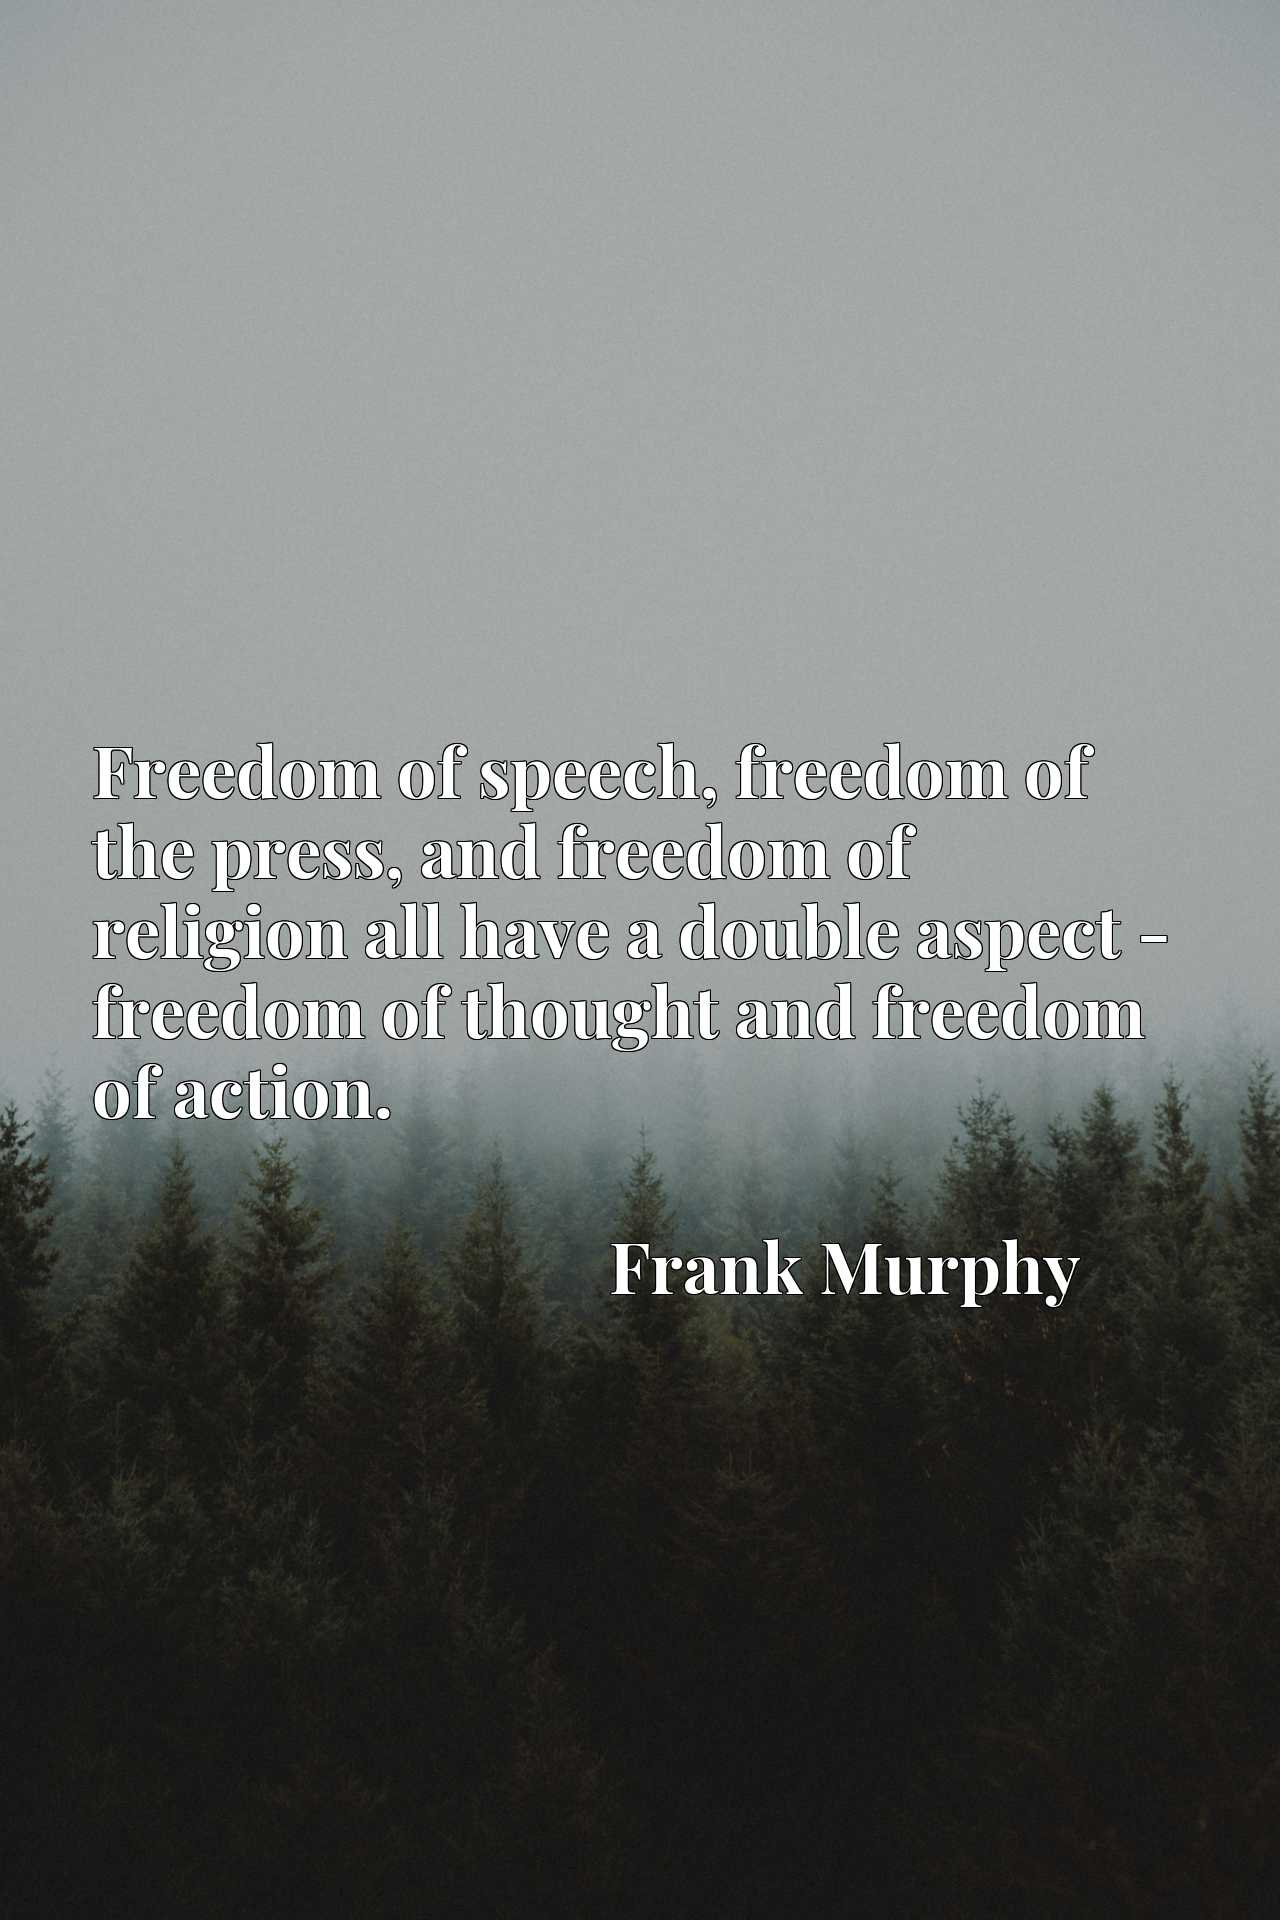 Freedom of speech, freedom of the press, and freedom of religion all have a double aspect - freedom of thought and freedom of action.